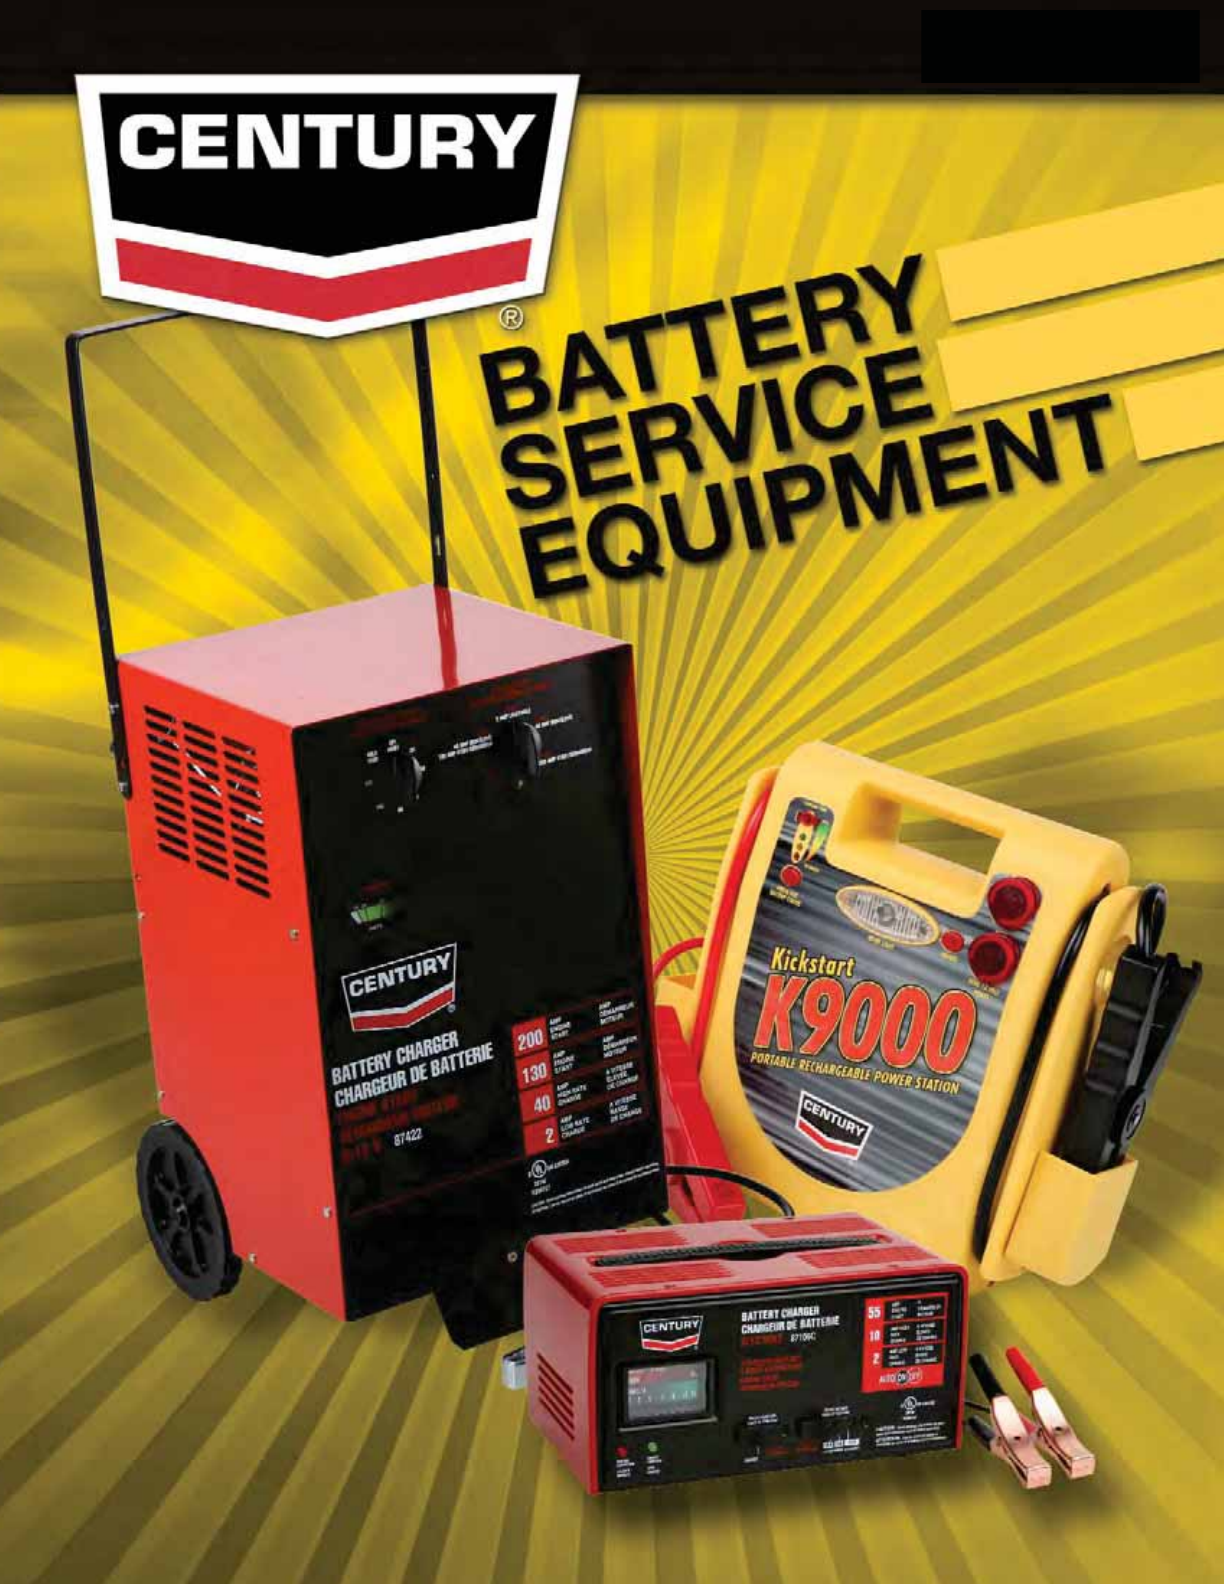 century battery charger 87001 user guide manualsonline com rh powertool manualsonline com century battery charger 87106 manual century battery charger 87102c manual